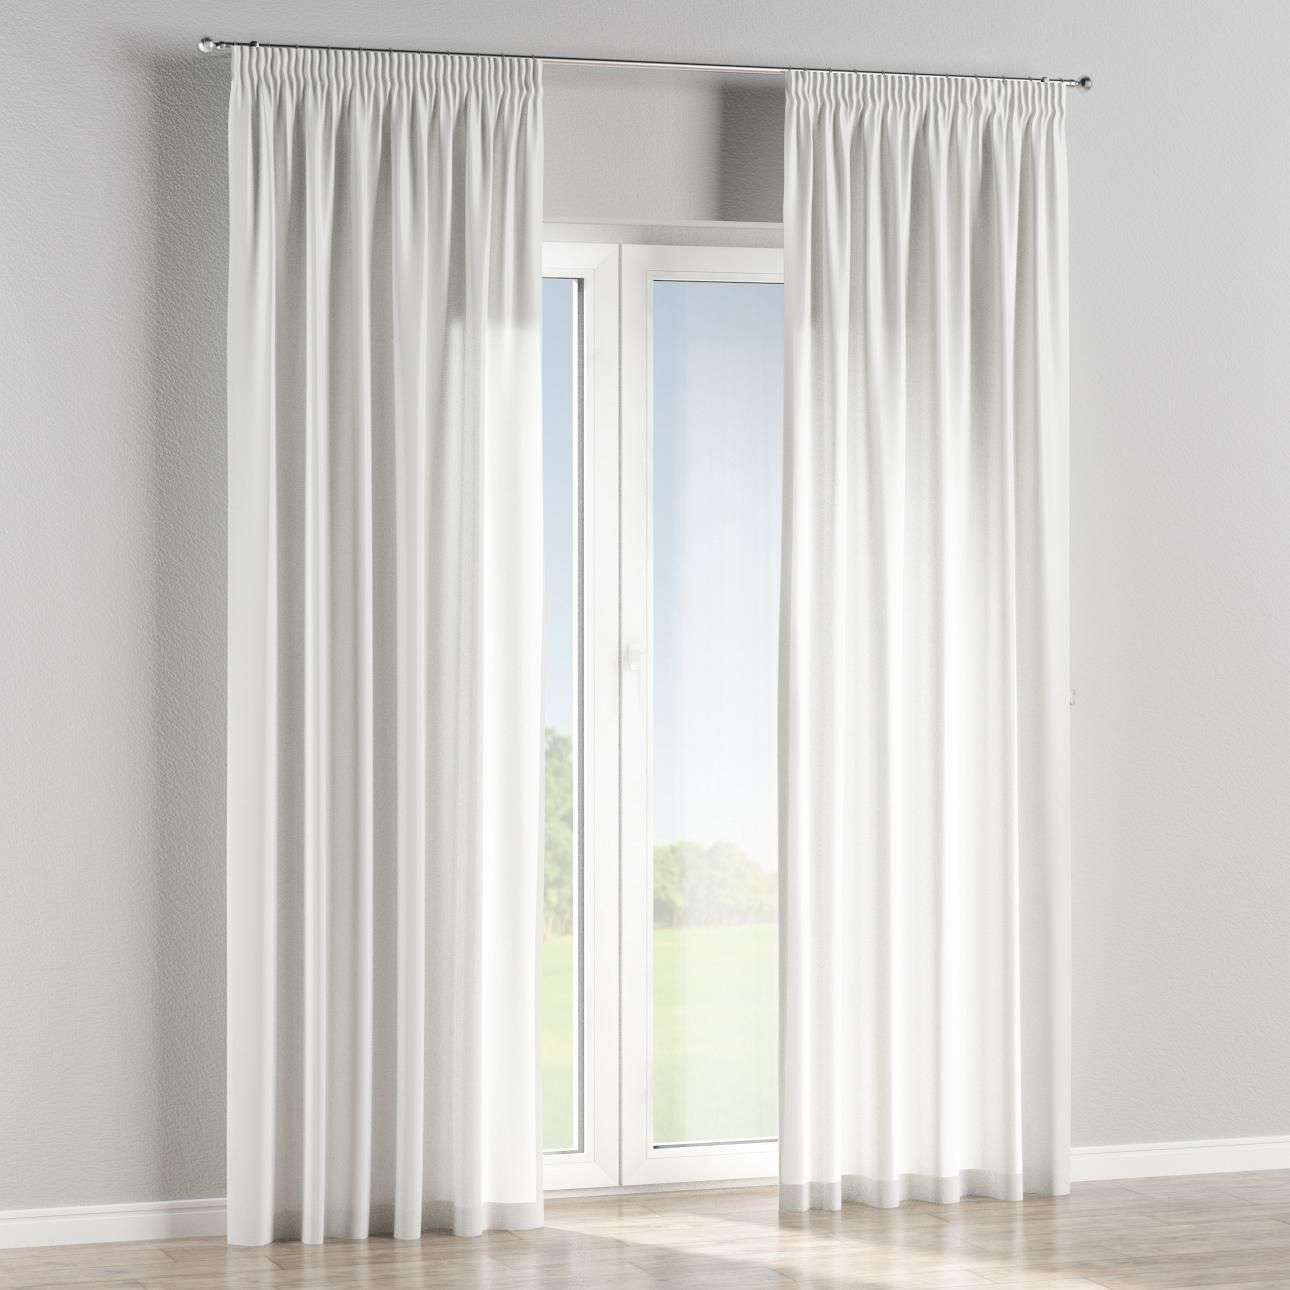 Pencil pleat lined curtains in collection Victoria, fabric: 130-03